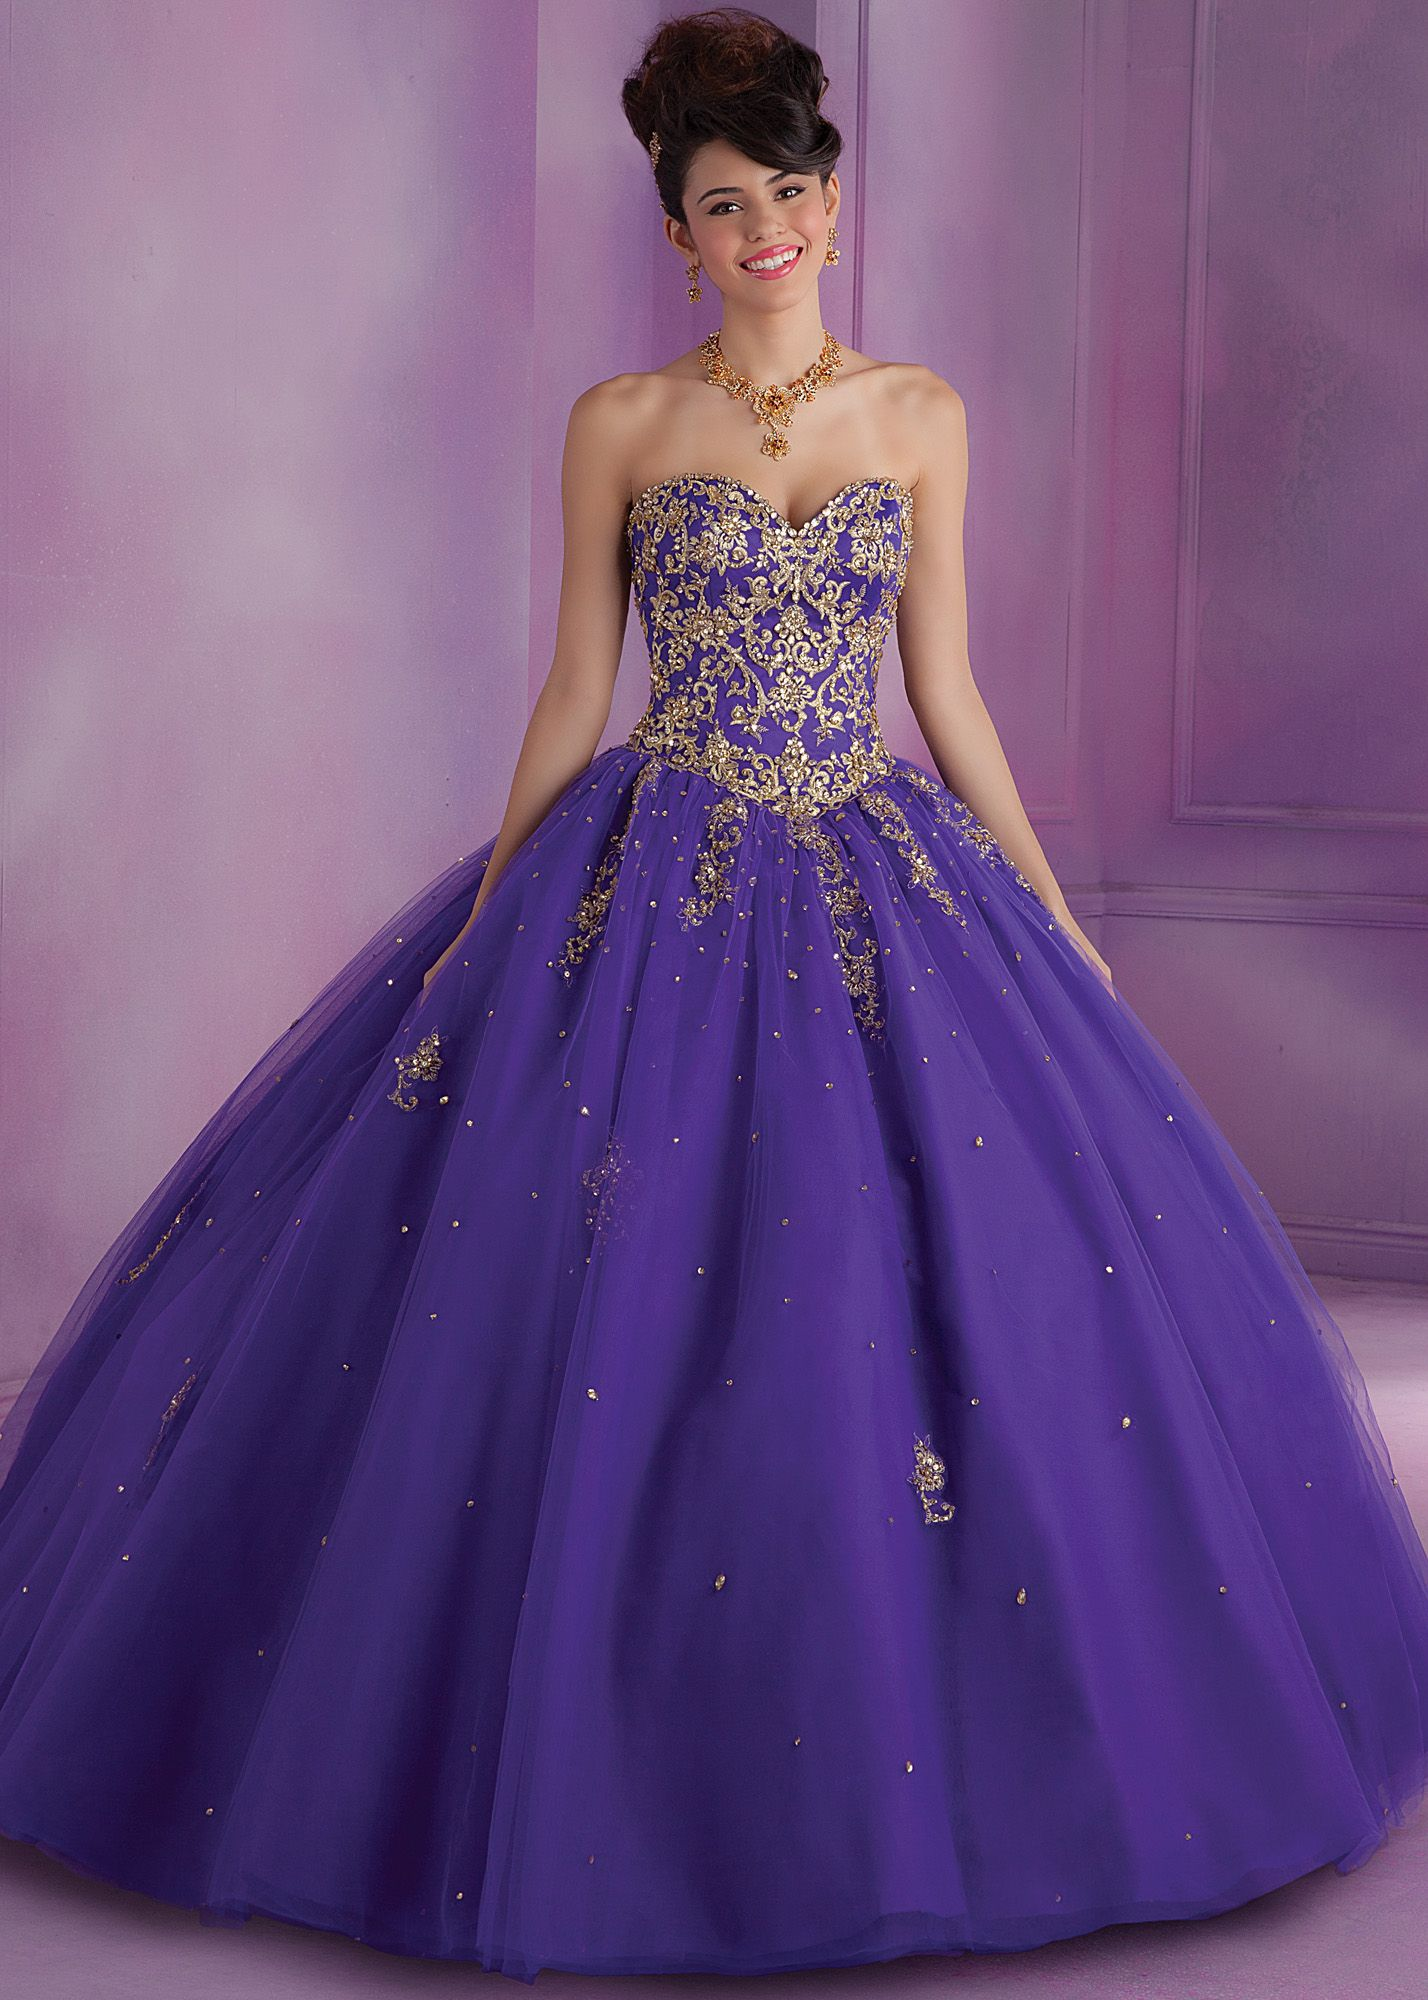 2dcb708f5c5 Mori Lee 89015 - Purple Beaded Strapless Quince Dress - RissyRoos.com